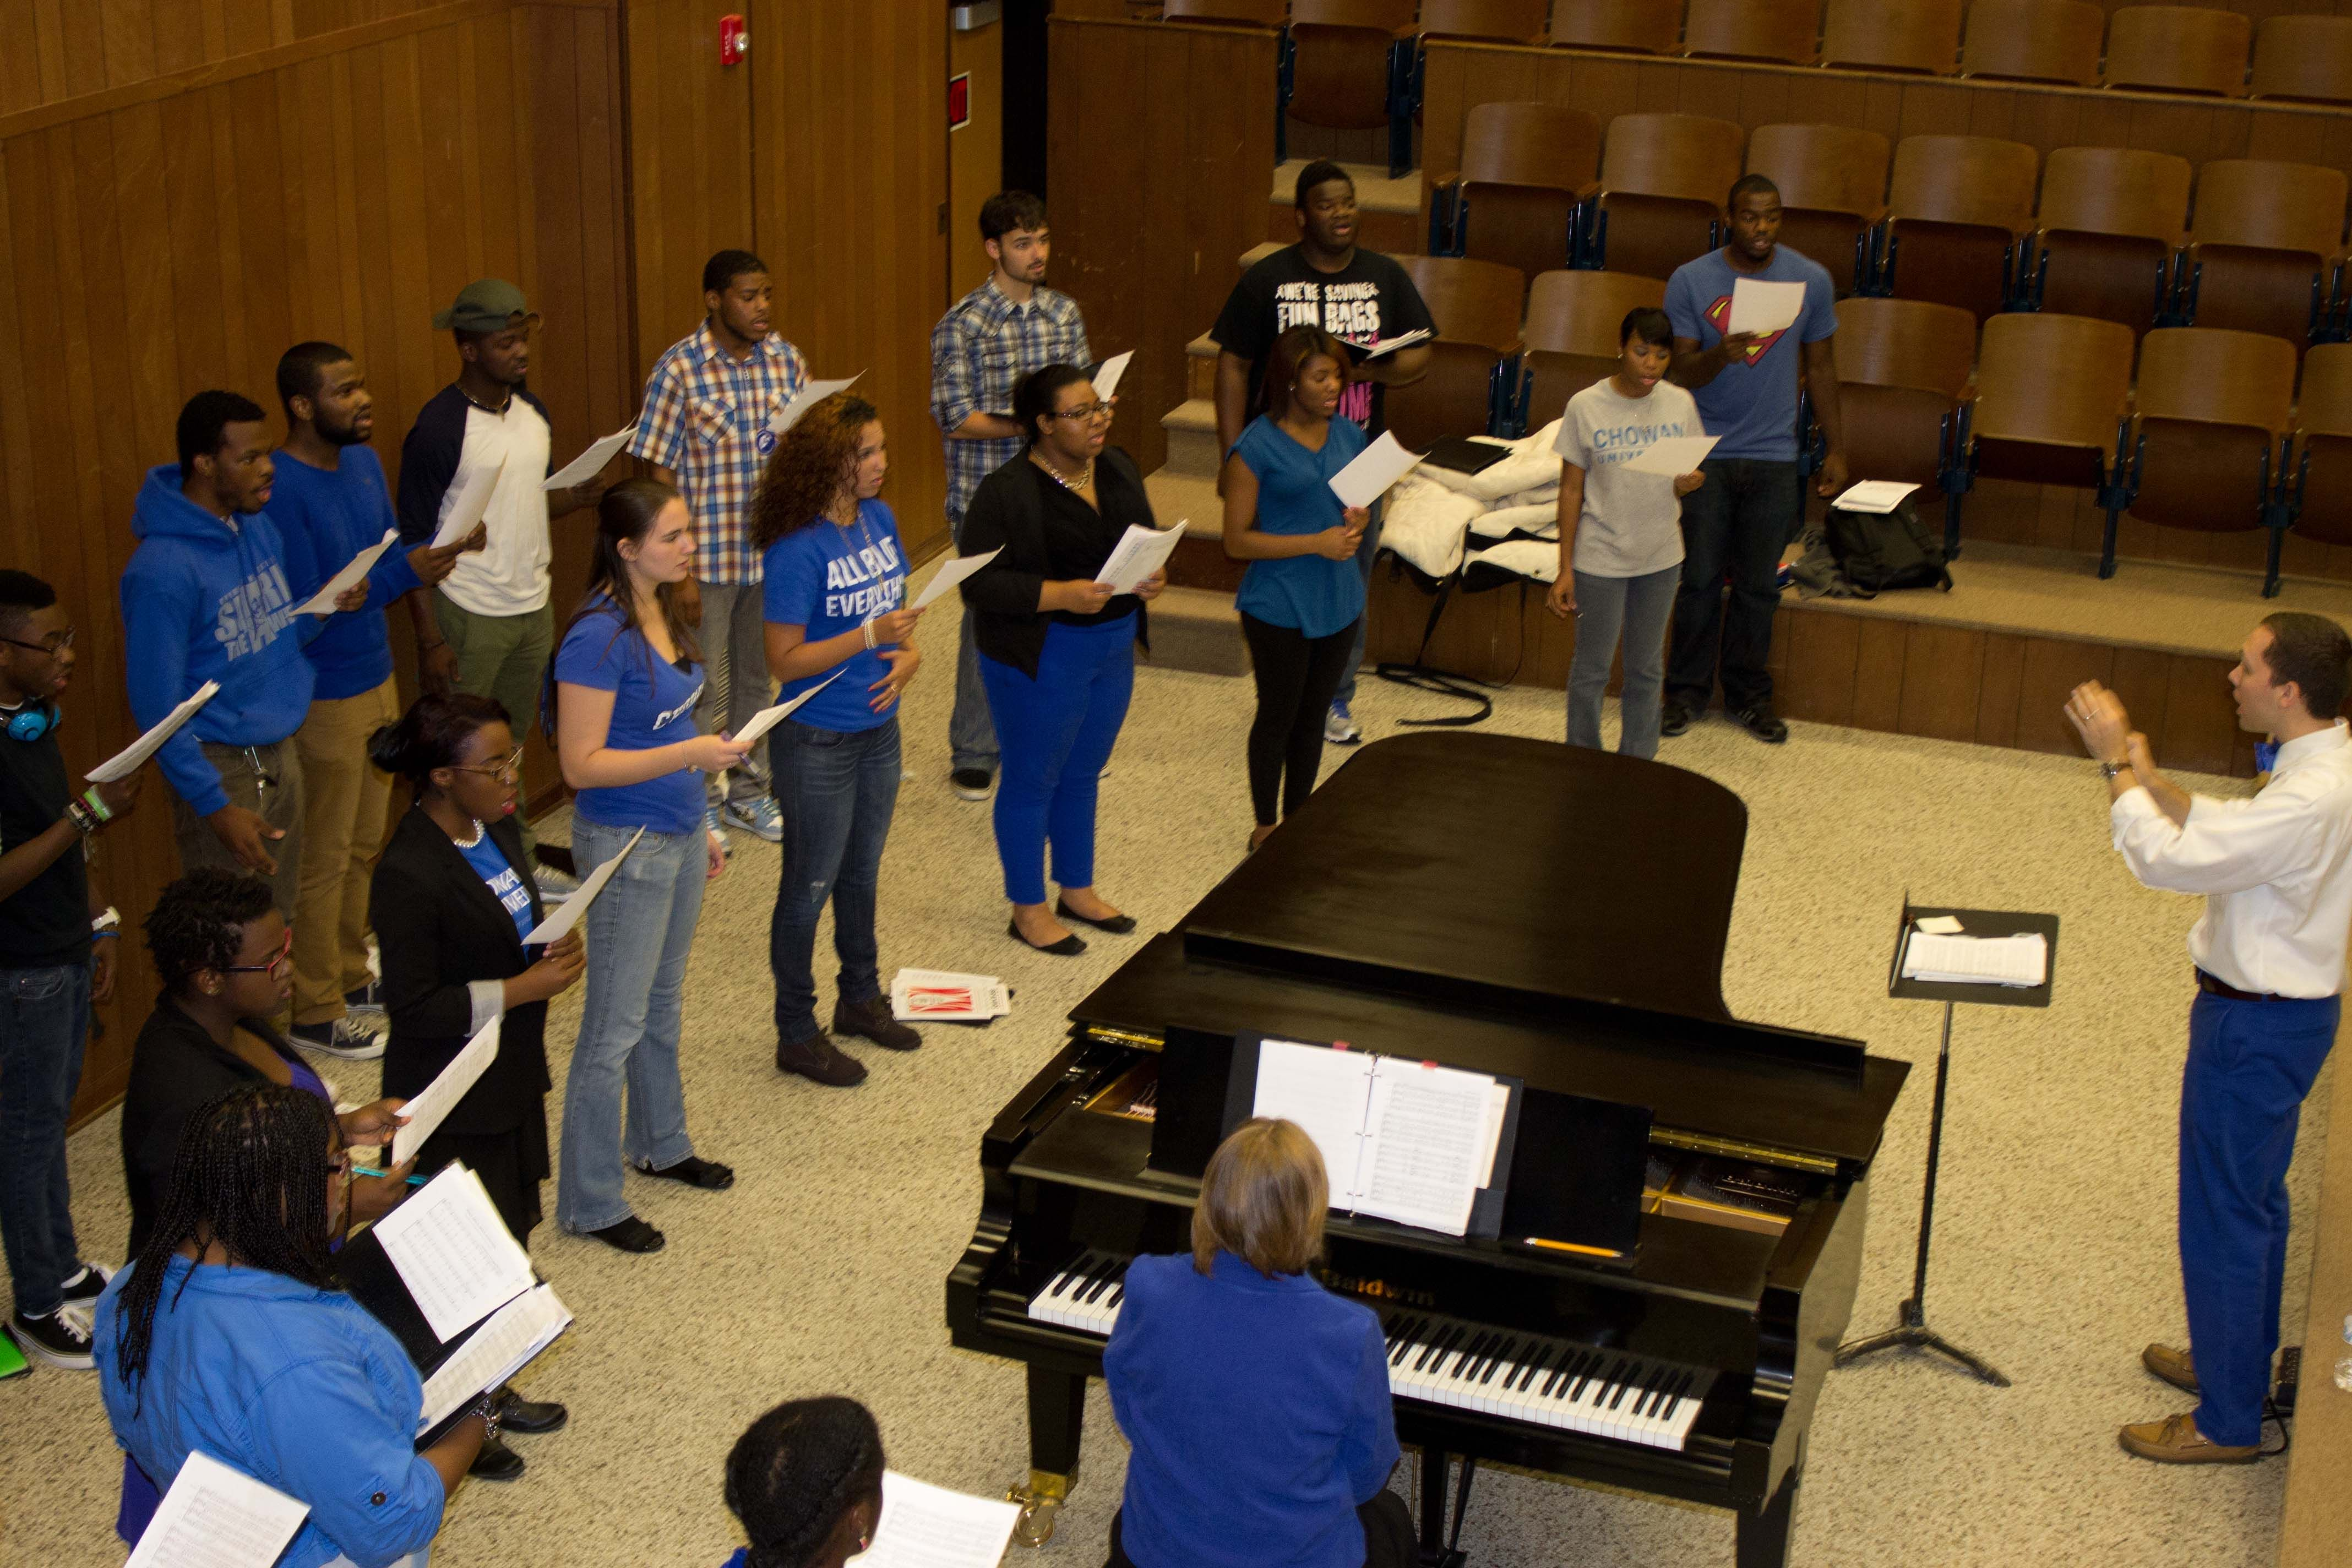 Chowan offers three choral ensemble options to our students - Chowan Singers, Cantare, and Chowan Chorus.